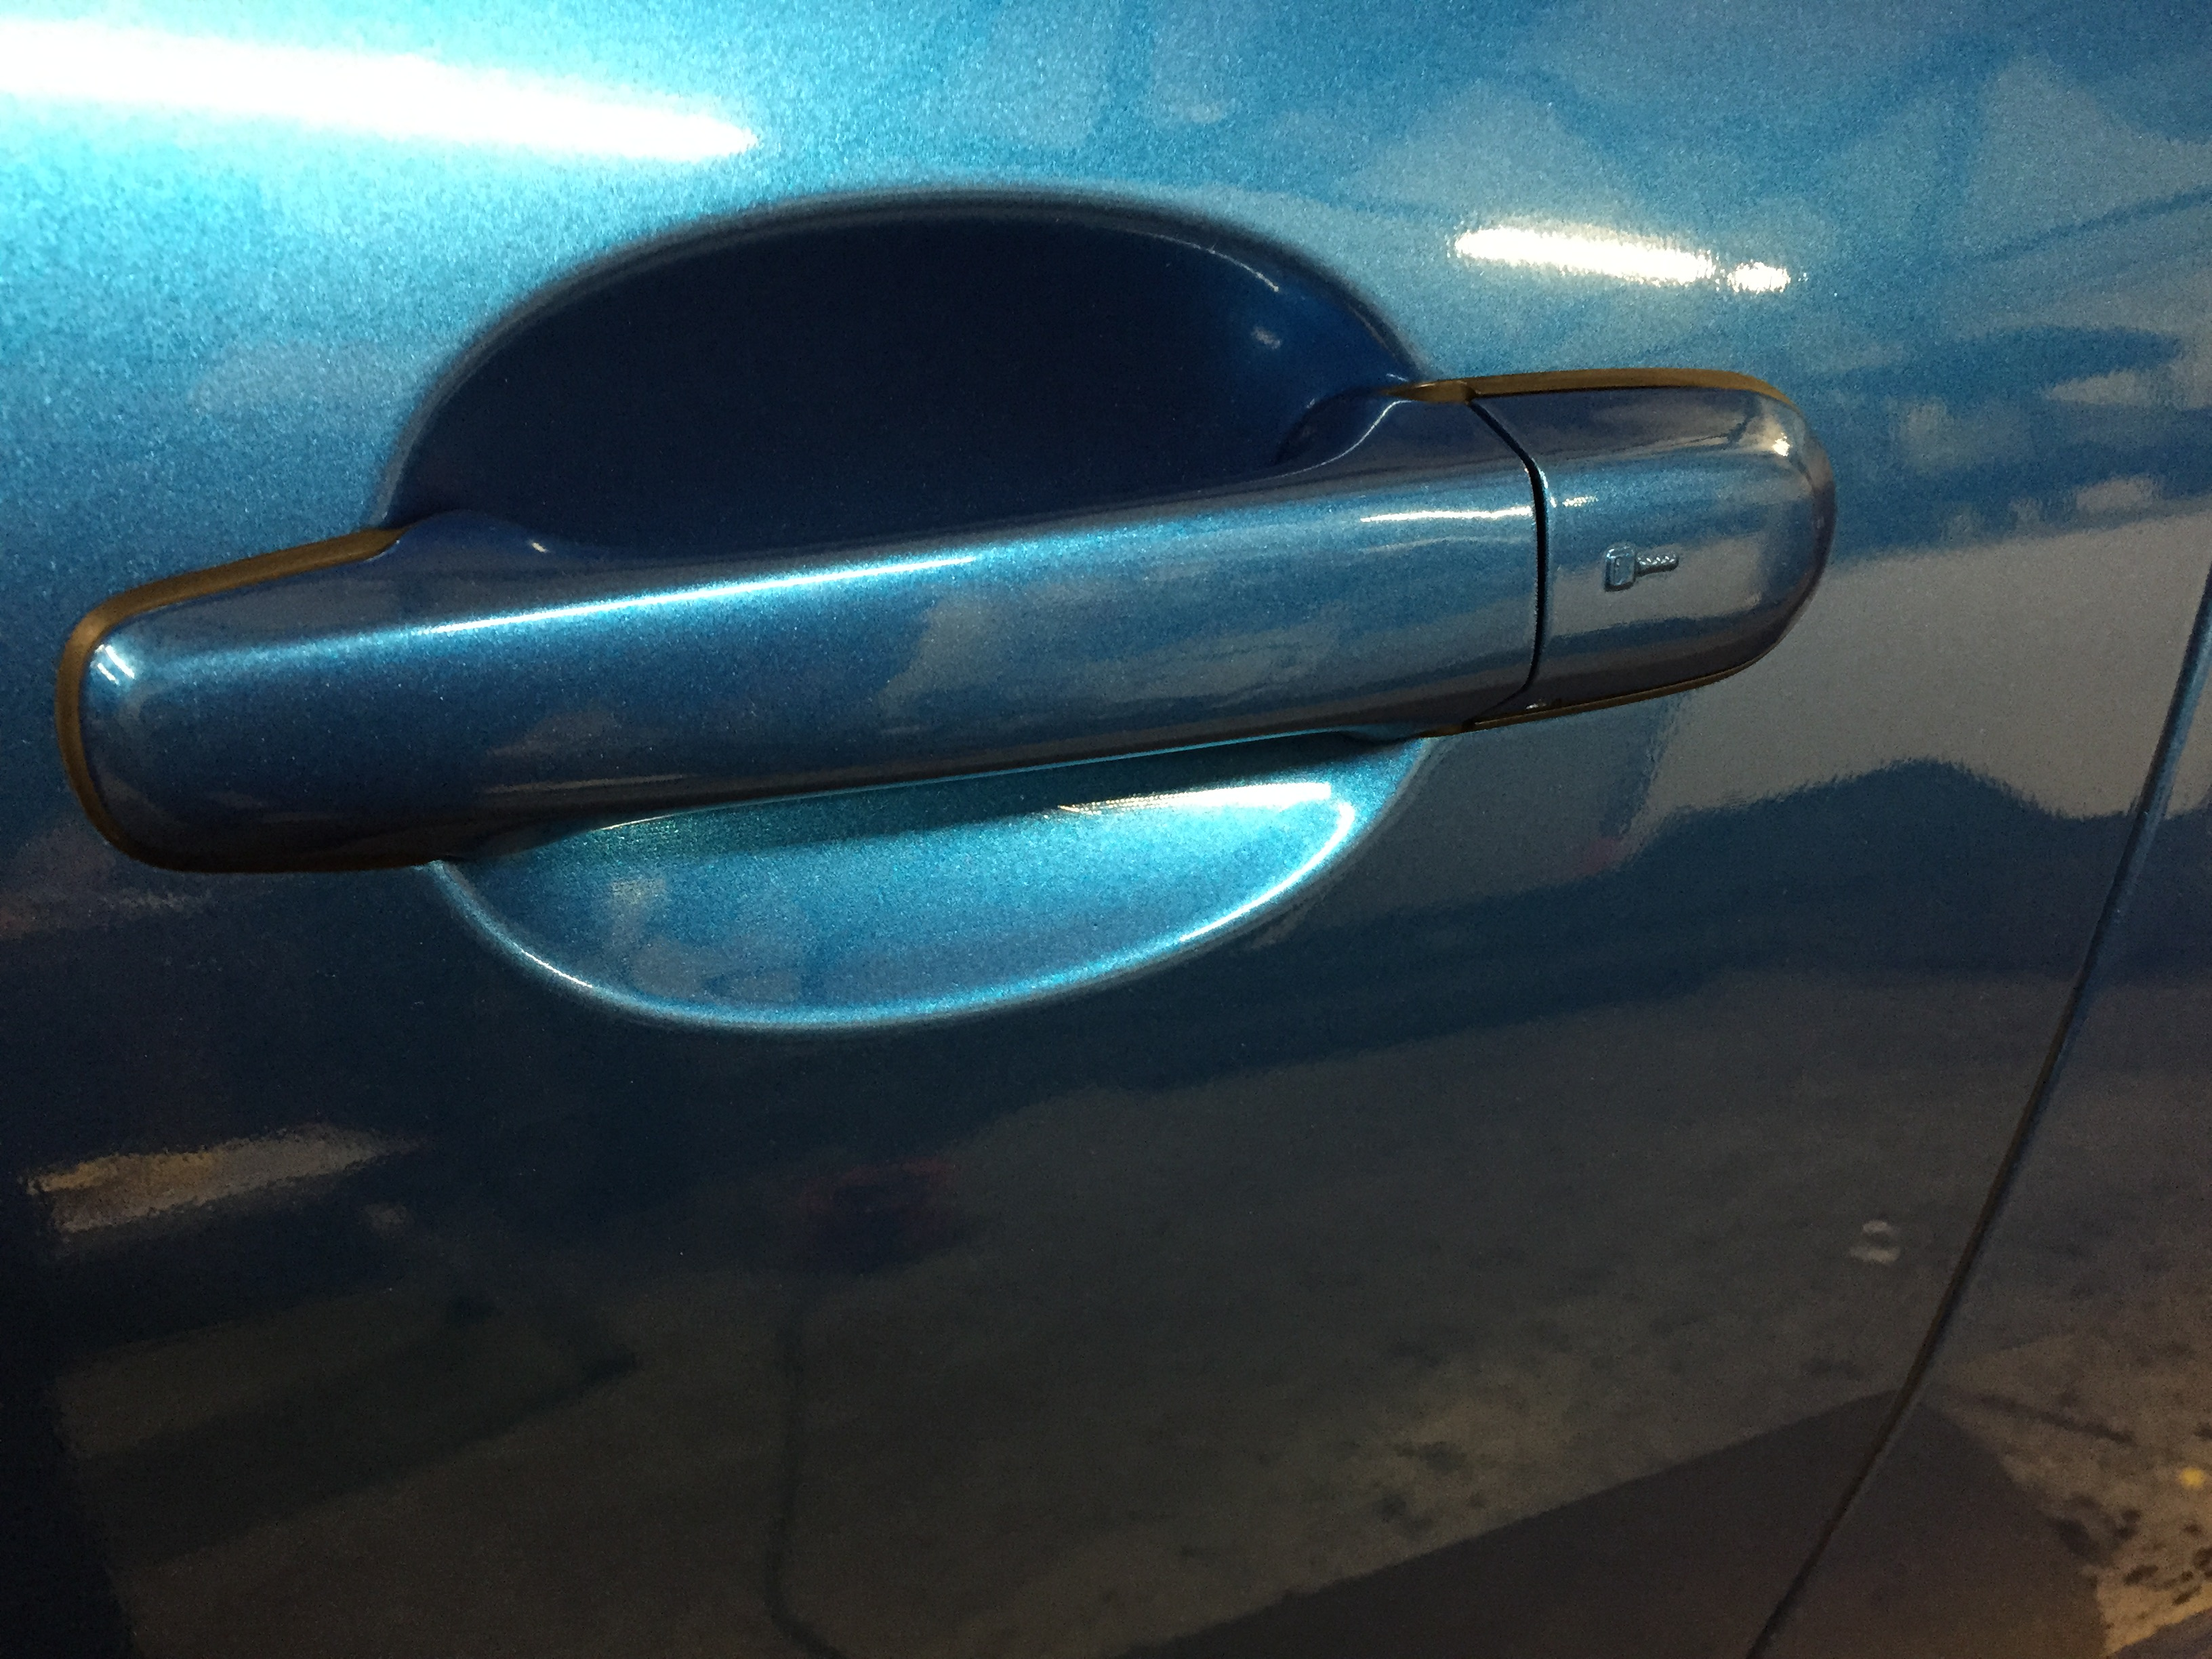 Jaguar XF Wrap door handles